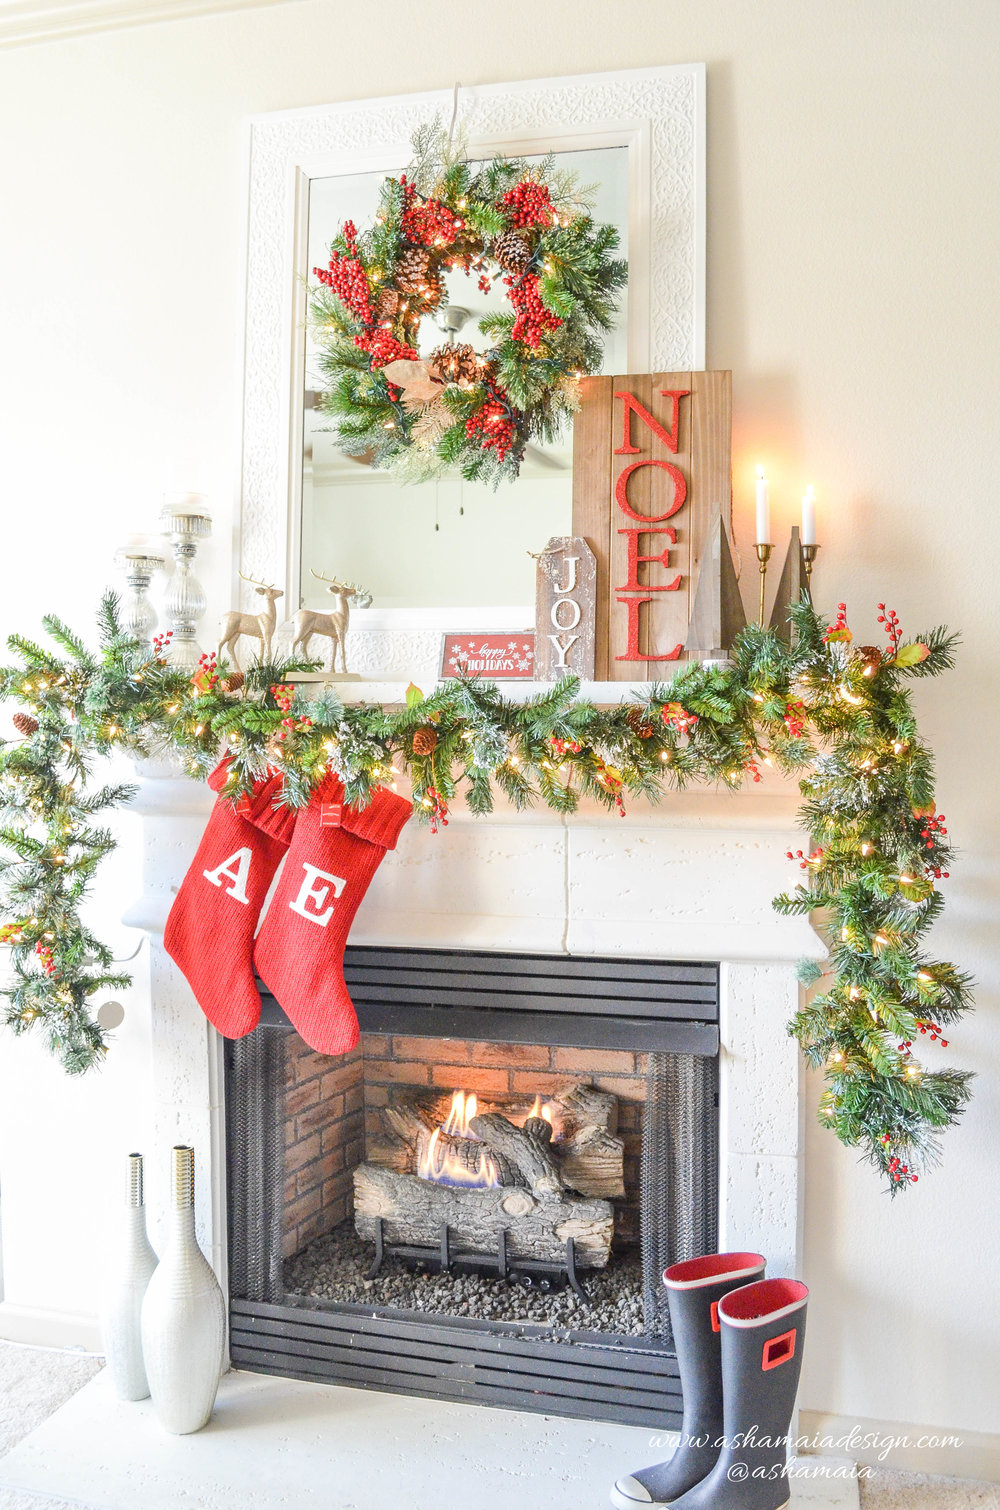 Cozy Christmas Decor-51.jpg